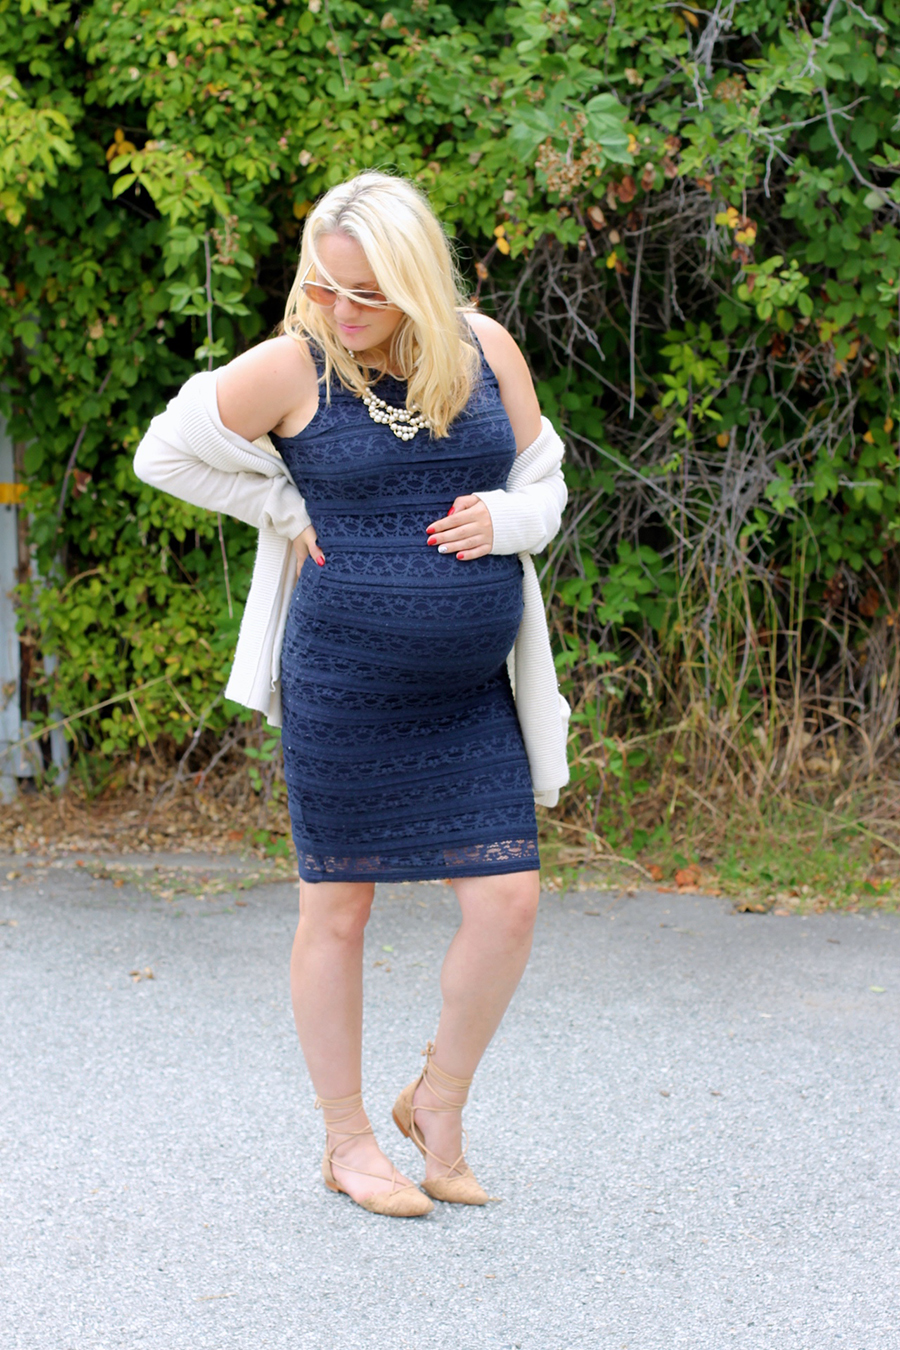 Ingrid and Isabel navy lace dress-Maternity Style-Outfit Inspiration-Bay Area Fashion Blogger-Have Need Want-Pregnancy Style 7